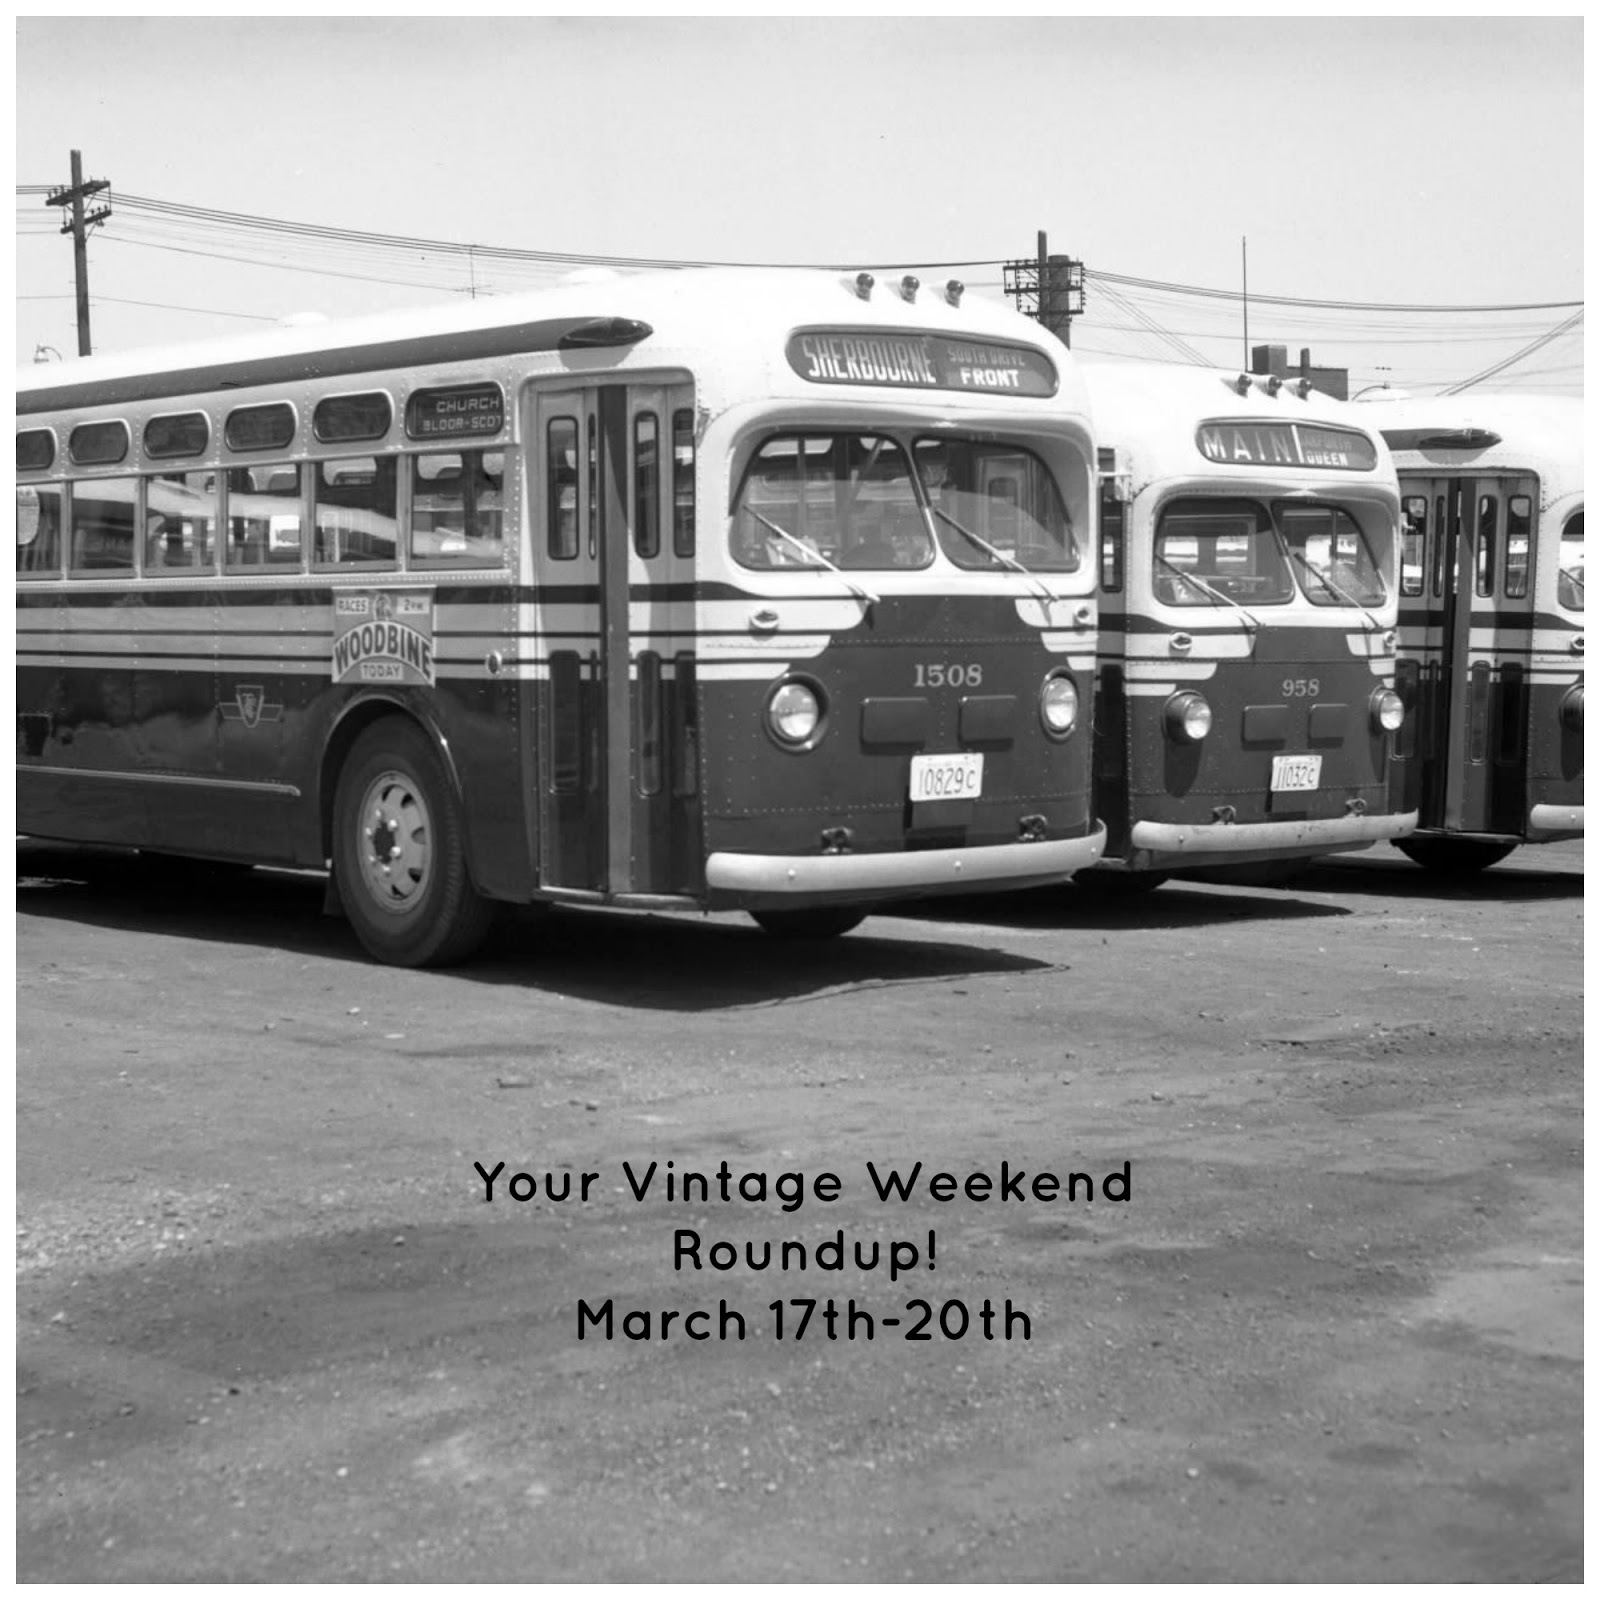 Your Vintage Weekend Roundup! March 17th-20th!